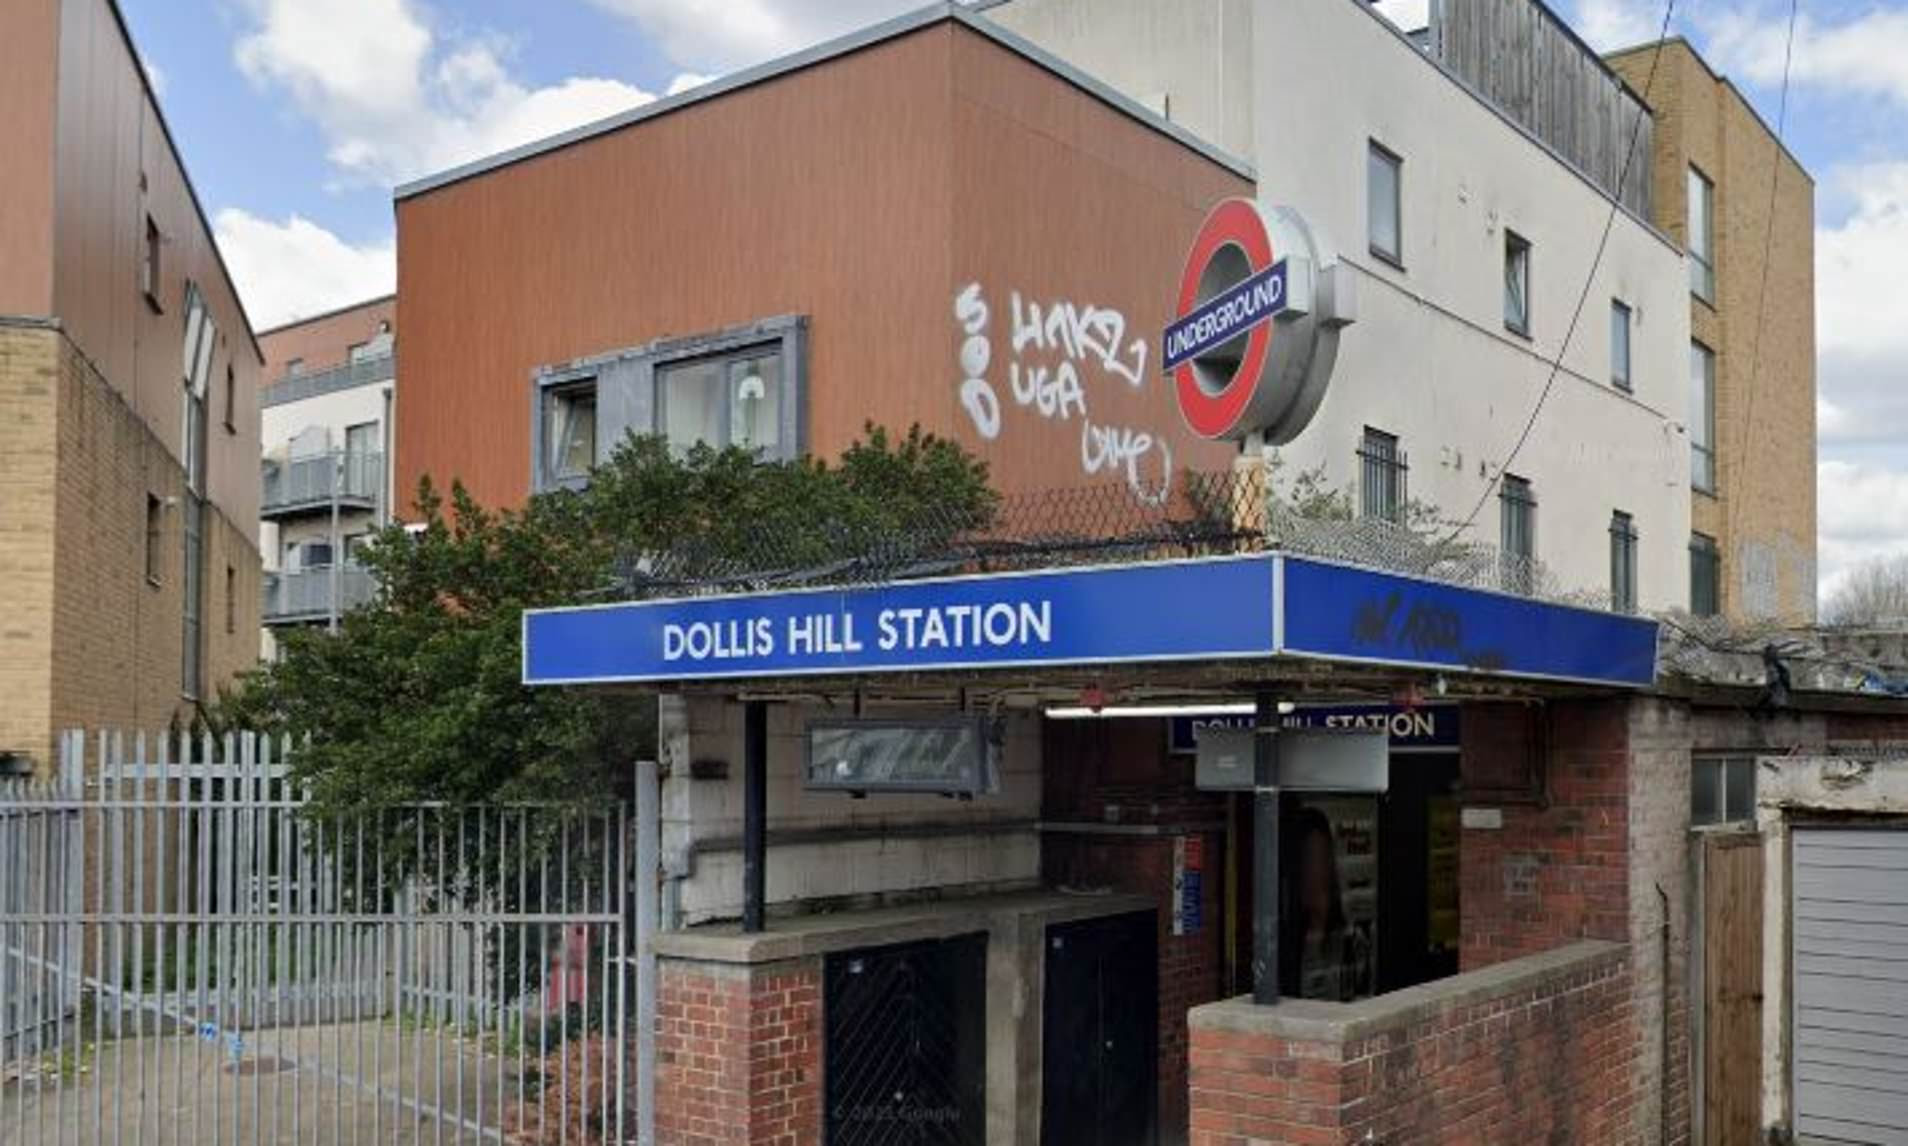 'Sex attacker lay in wait for women at London tube station before following and assaulting them'